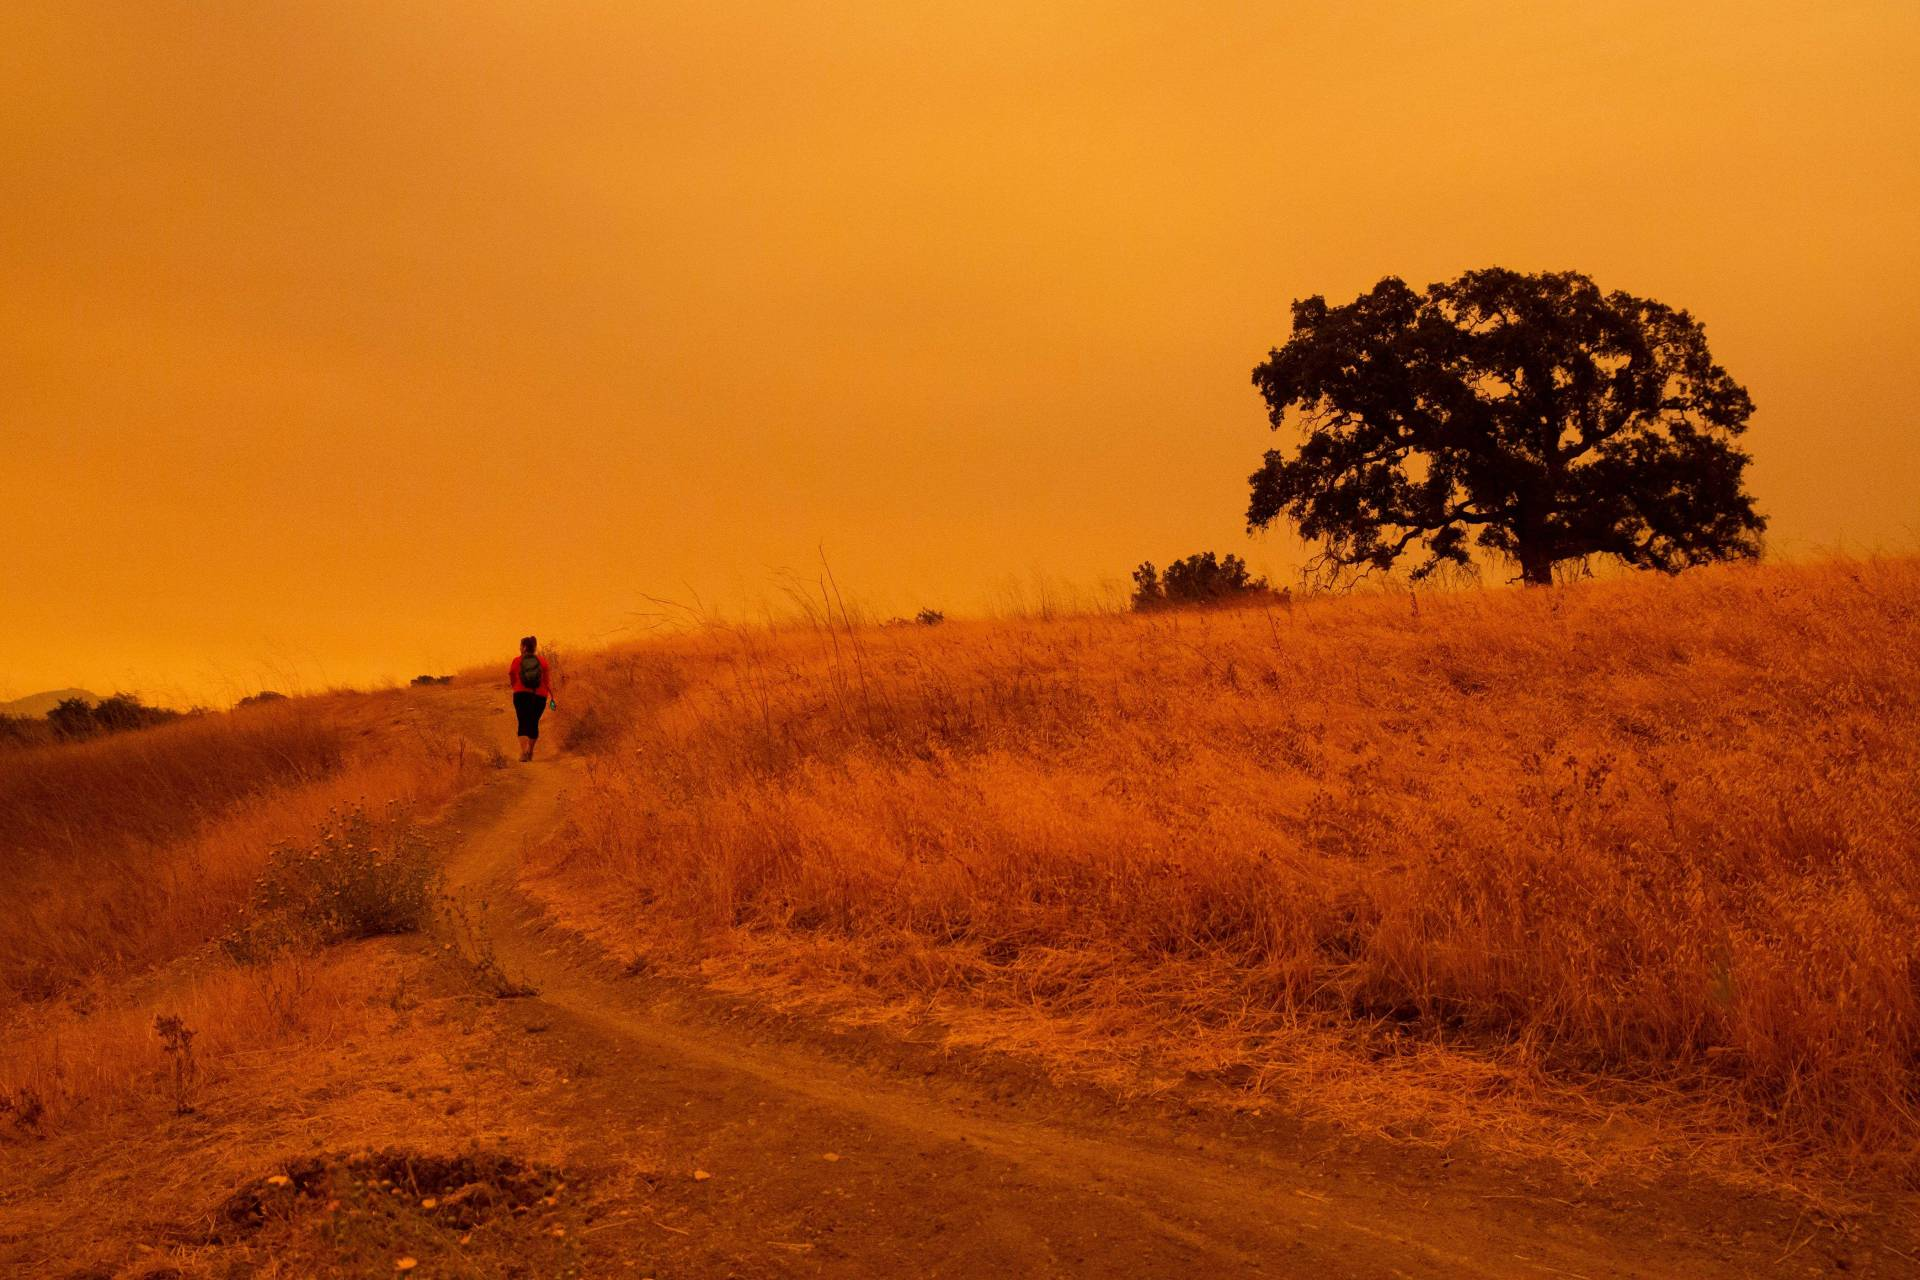 A hiker walks below an orange sky filled with wildfire smoke on the Limeridge Open Space hiking trails in Concord, California on September 9, 2020. Dangerous dry winds whipped up California's record-breaking wildfires and ignited new blazes, as hundreds were evacuated by helicopter. Brittany Hosea-Small/AFP/Getty Images